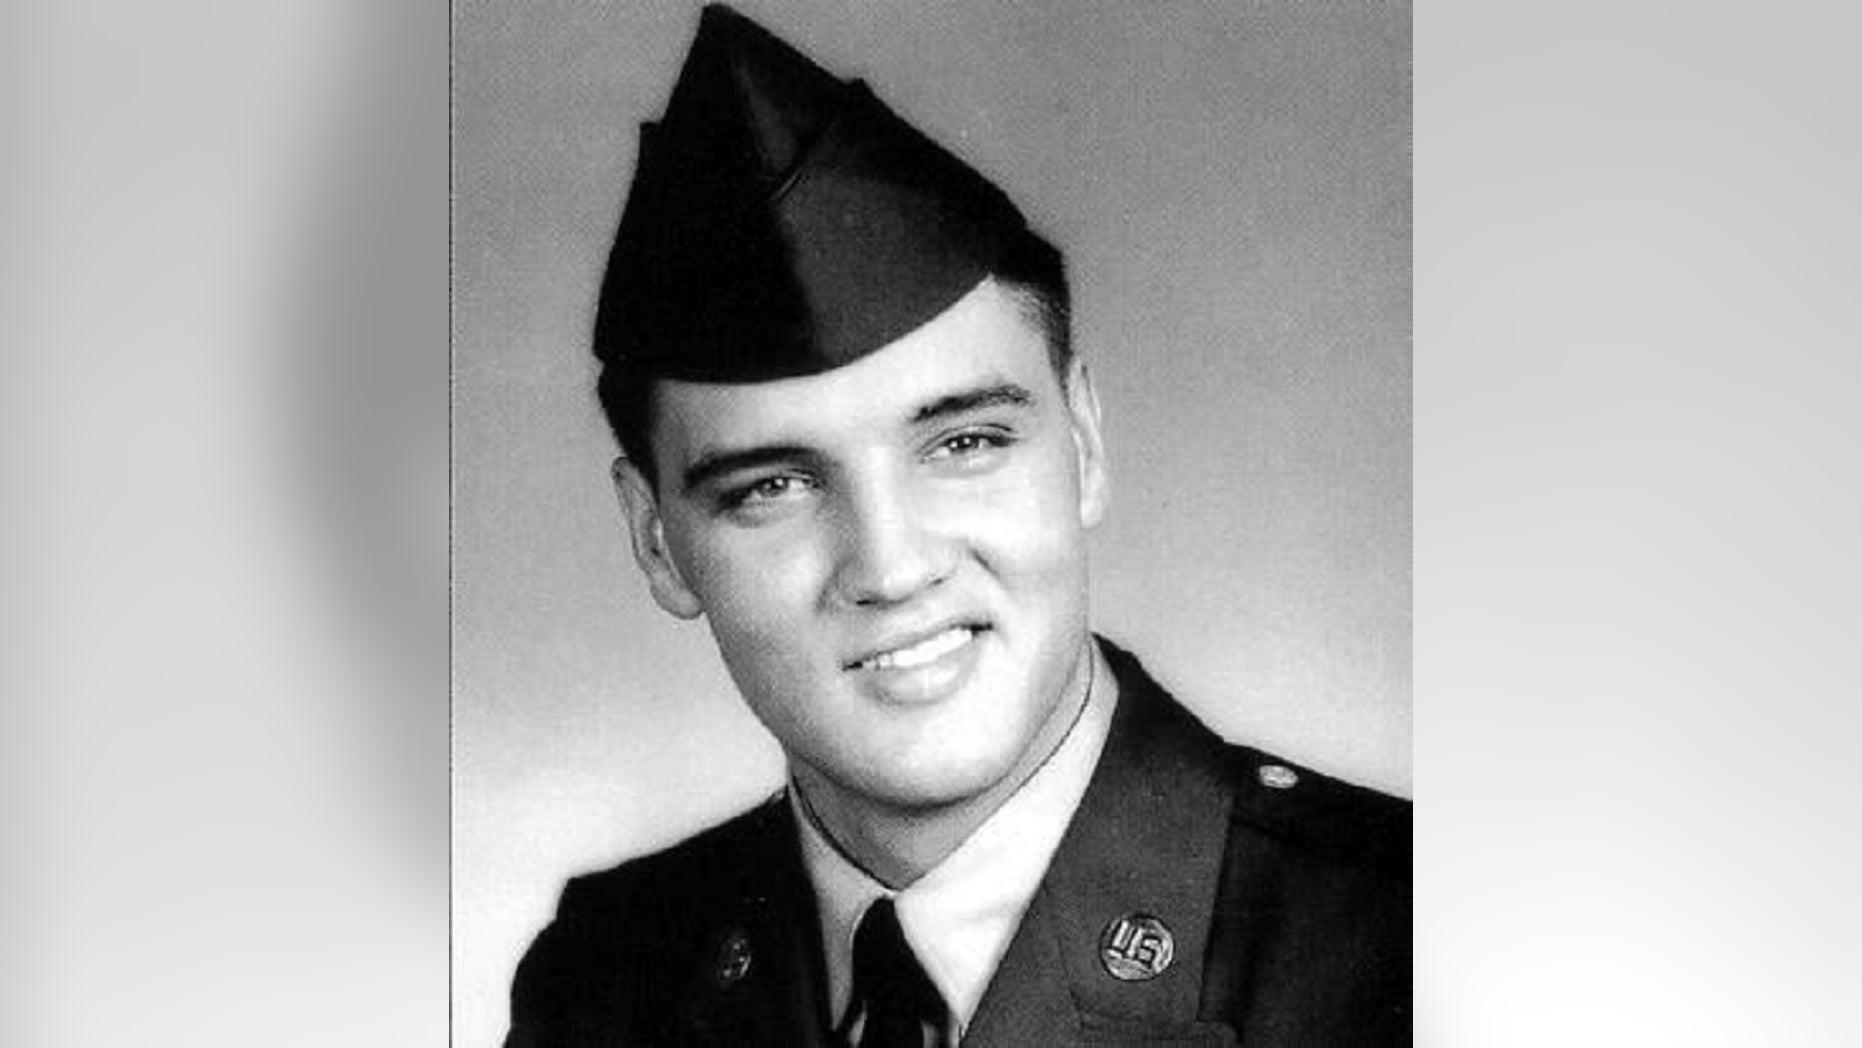 FILE:Elvis Presley entered the United States Army at Memphis, Tennessee, on March 24, 1958.